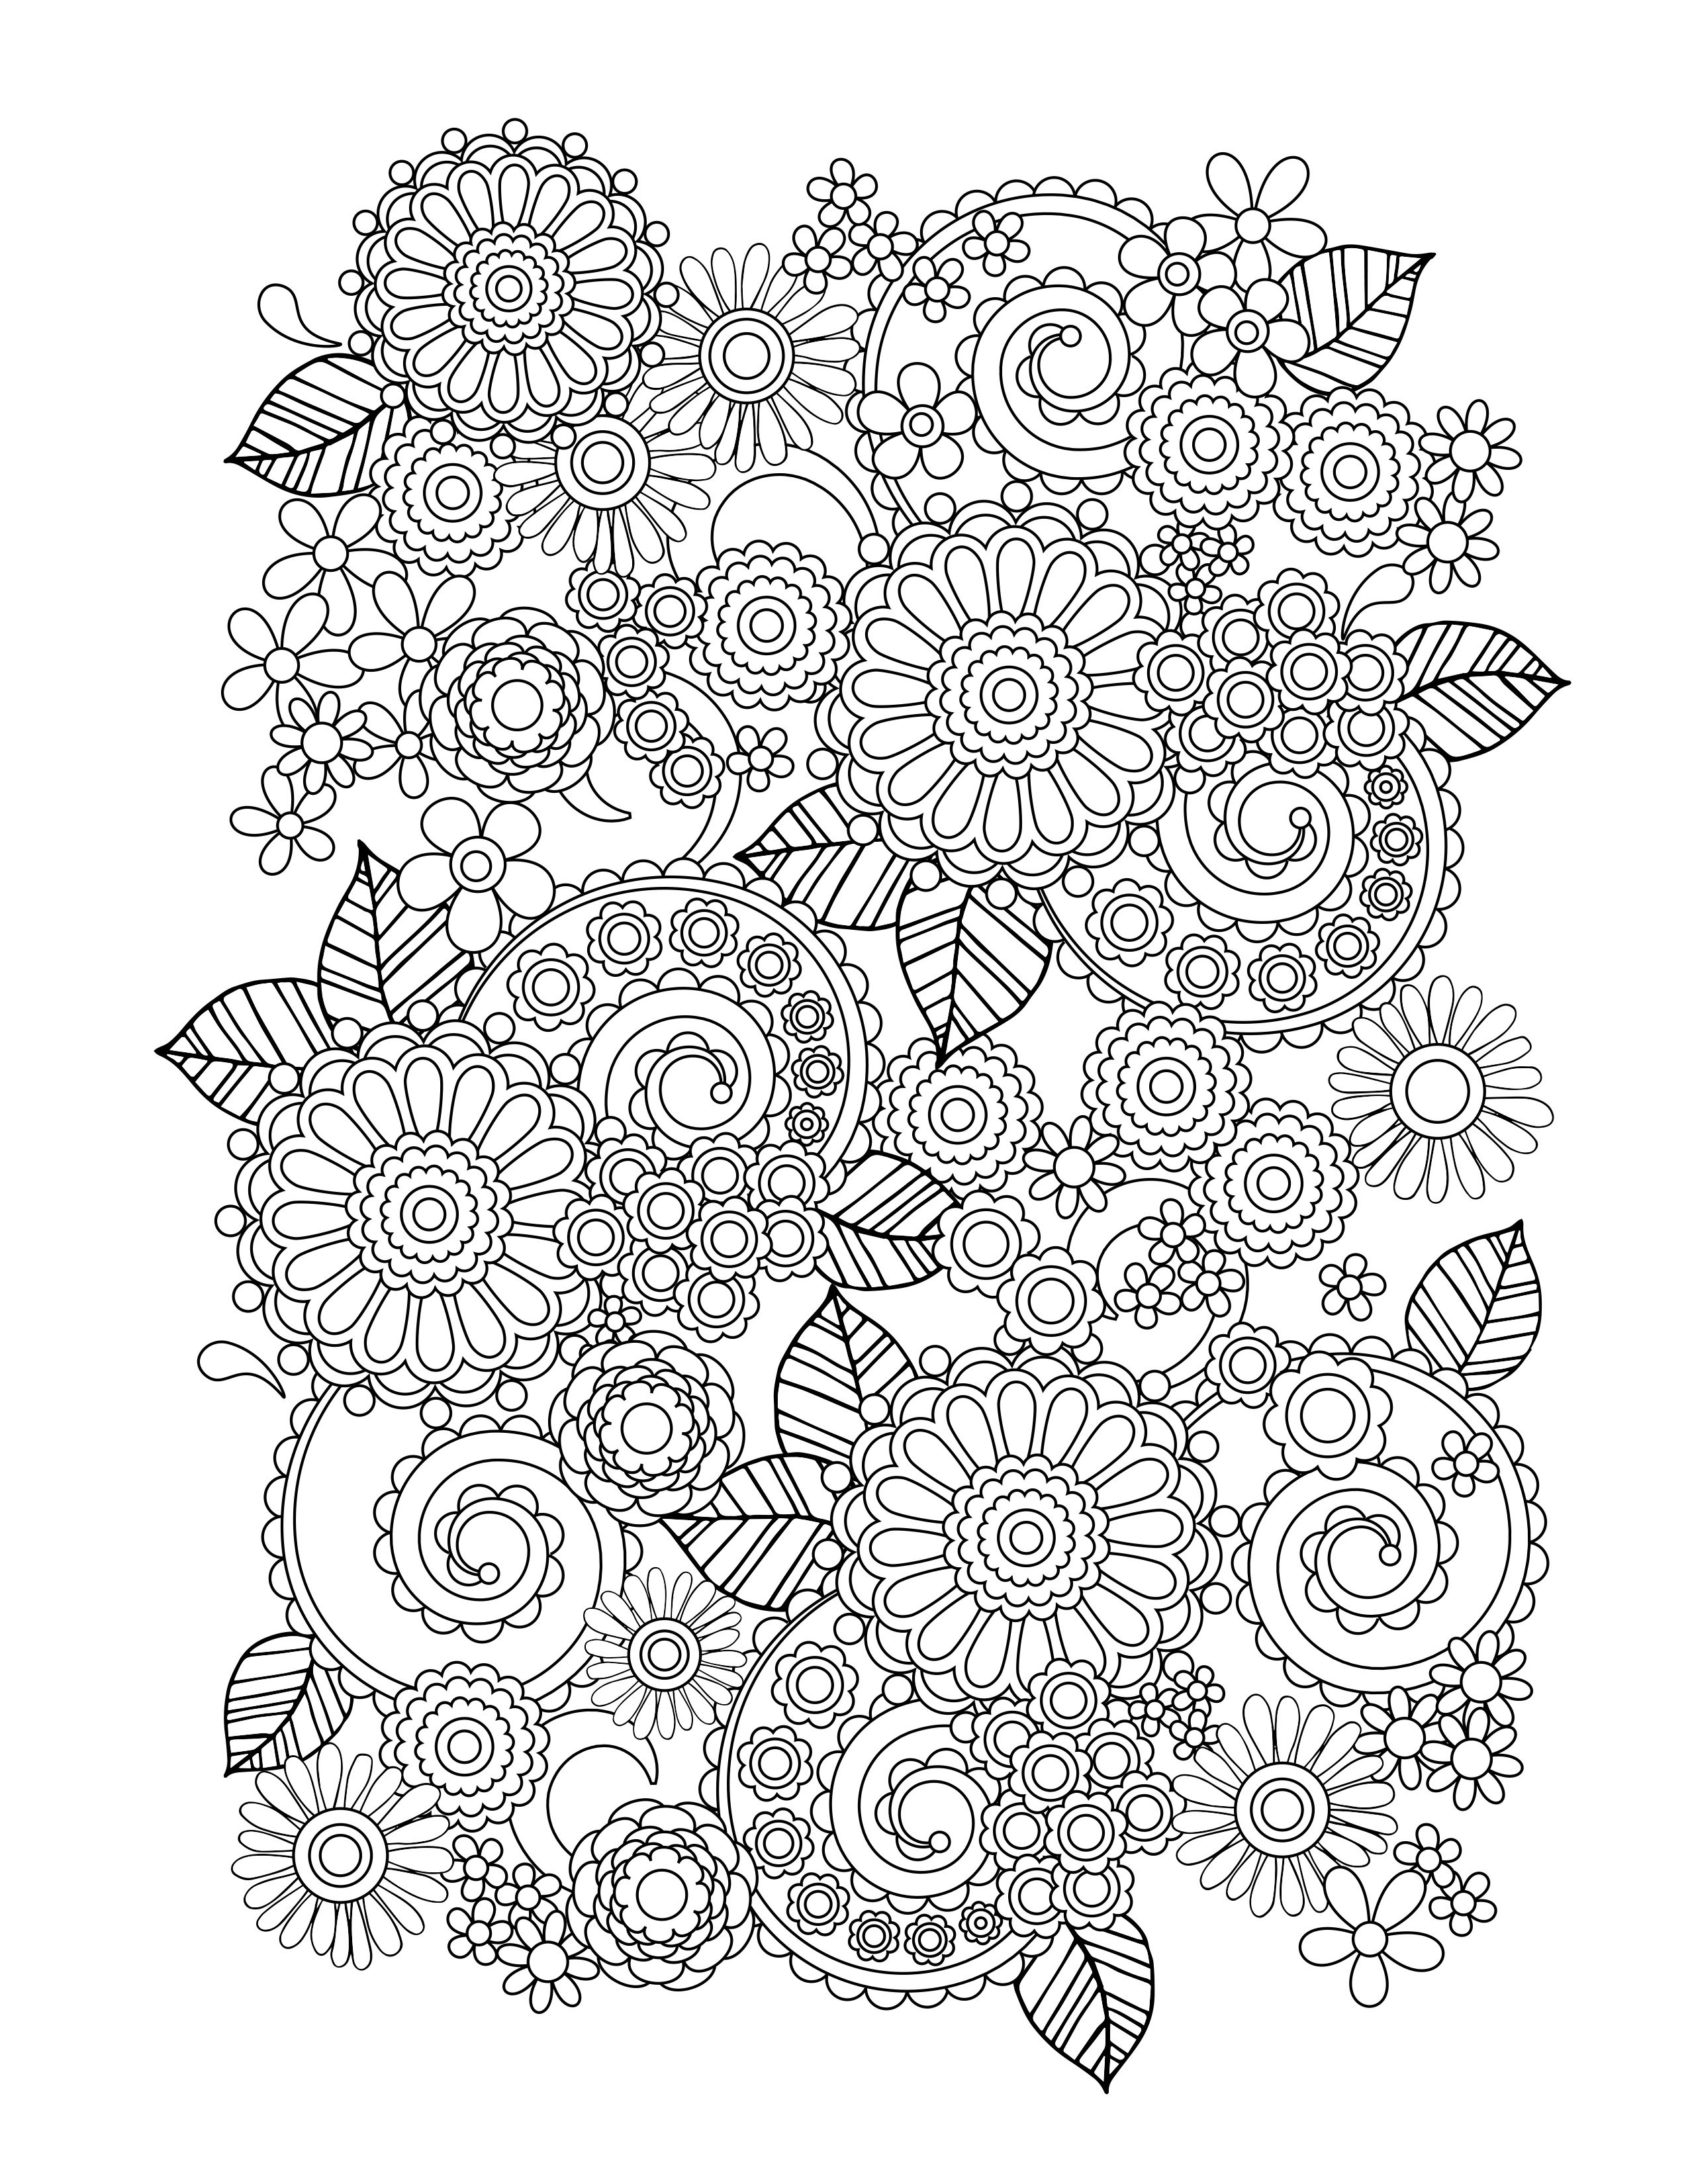 coloring pages for adults flowers flower celine flowers adult coloring pages adults pages for flowers coloring